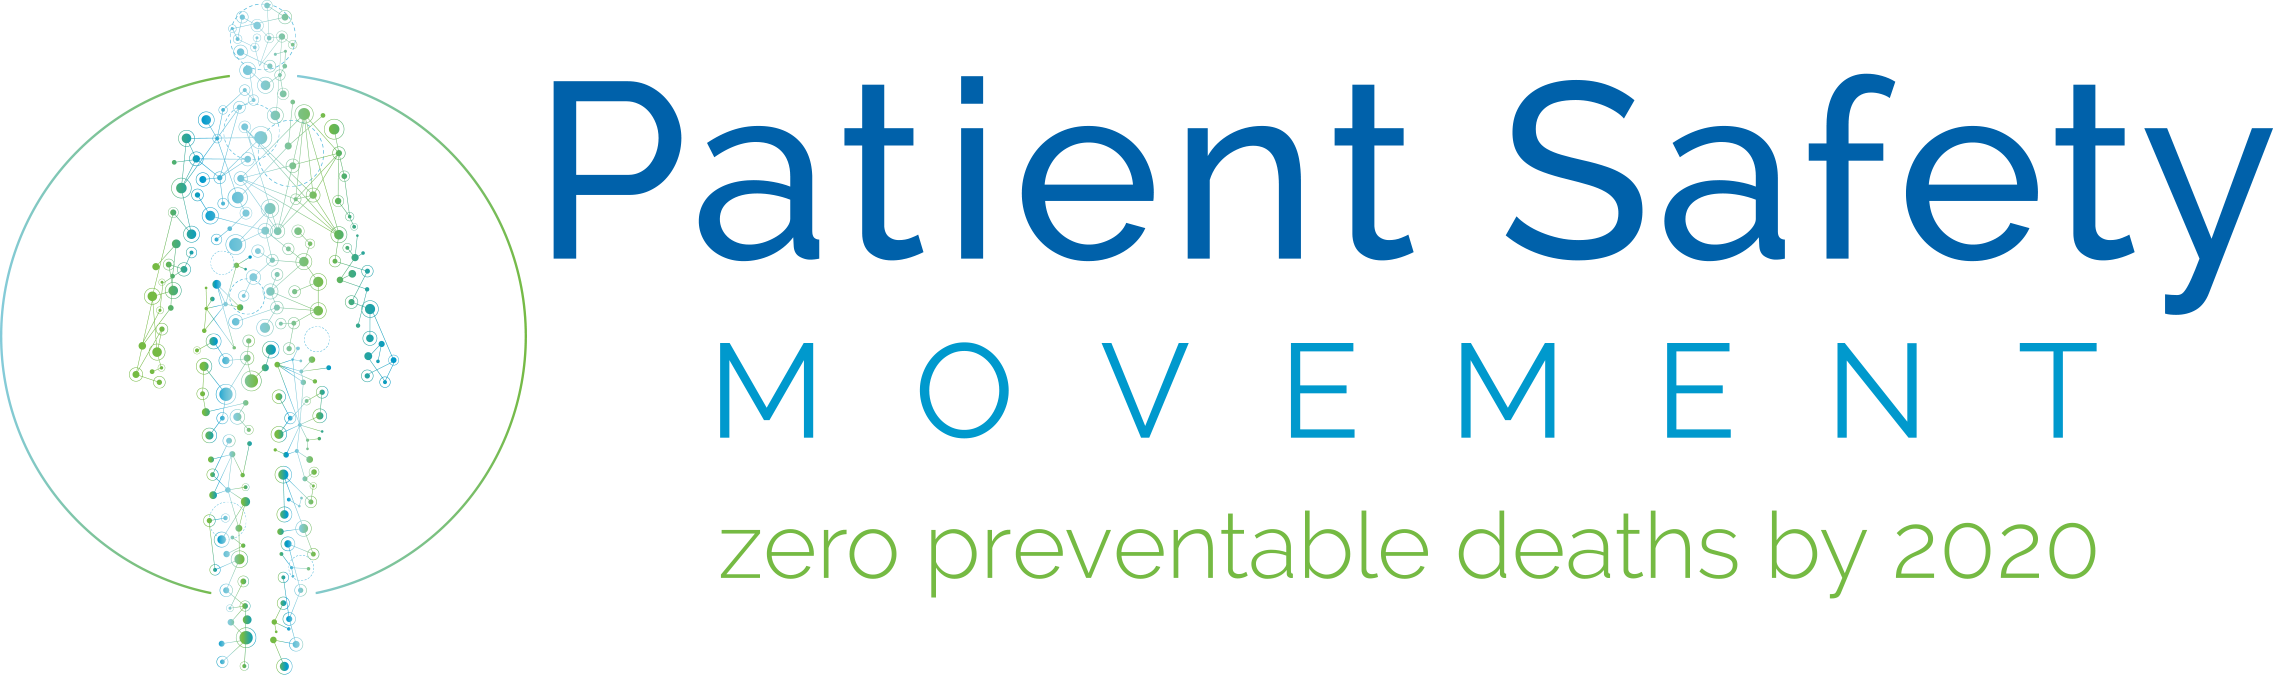 logo for Patient Safety Movement